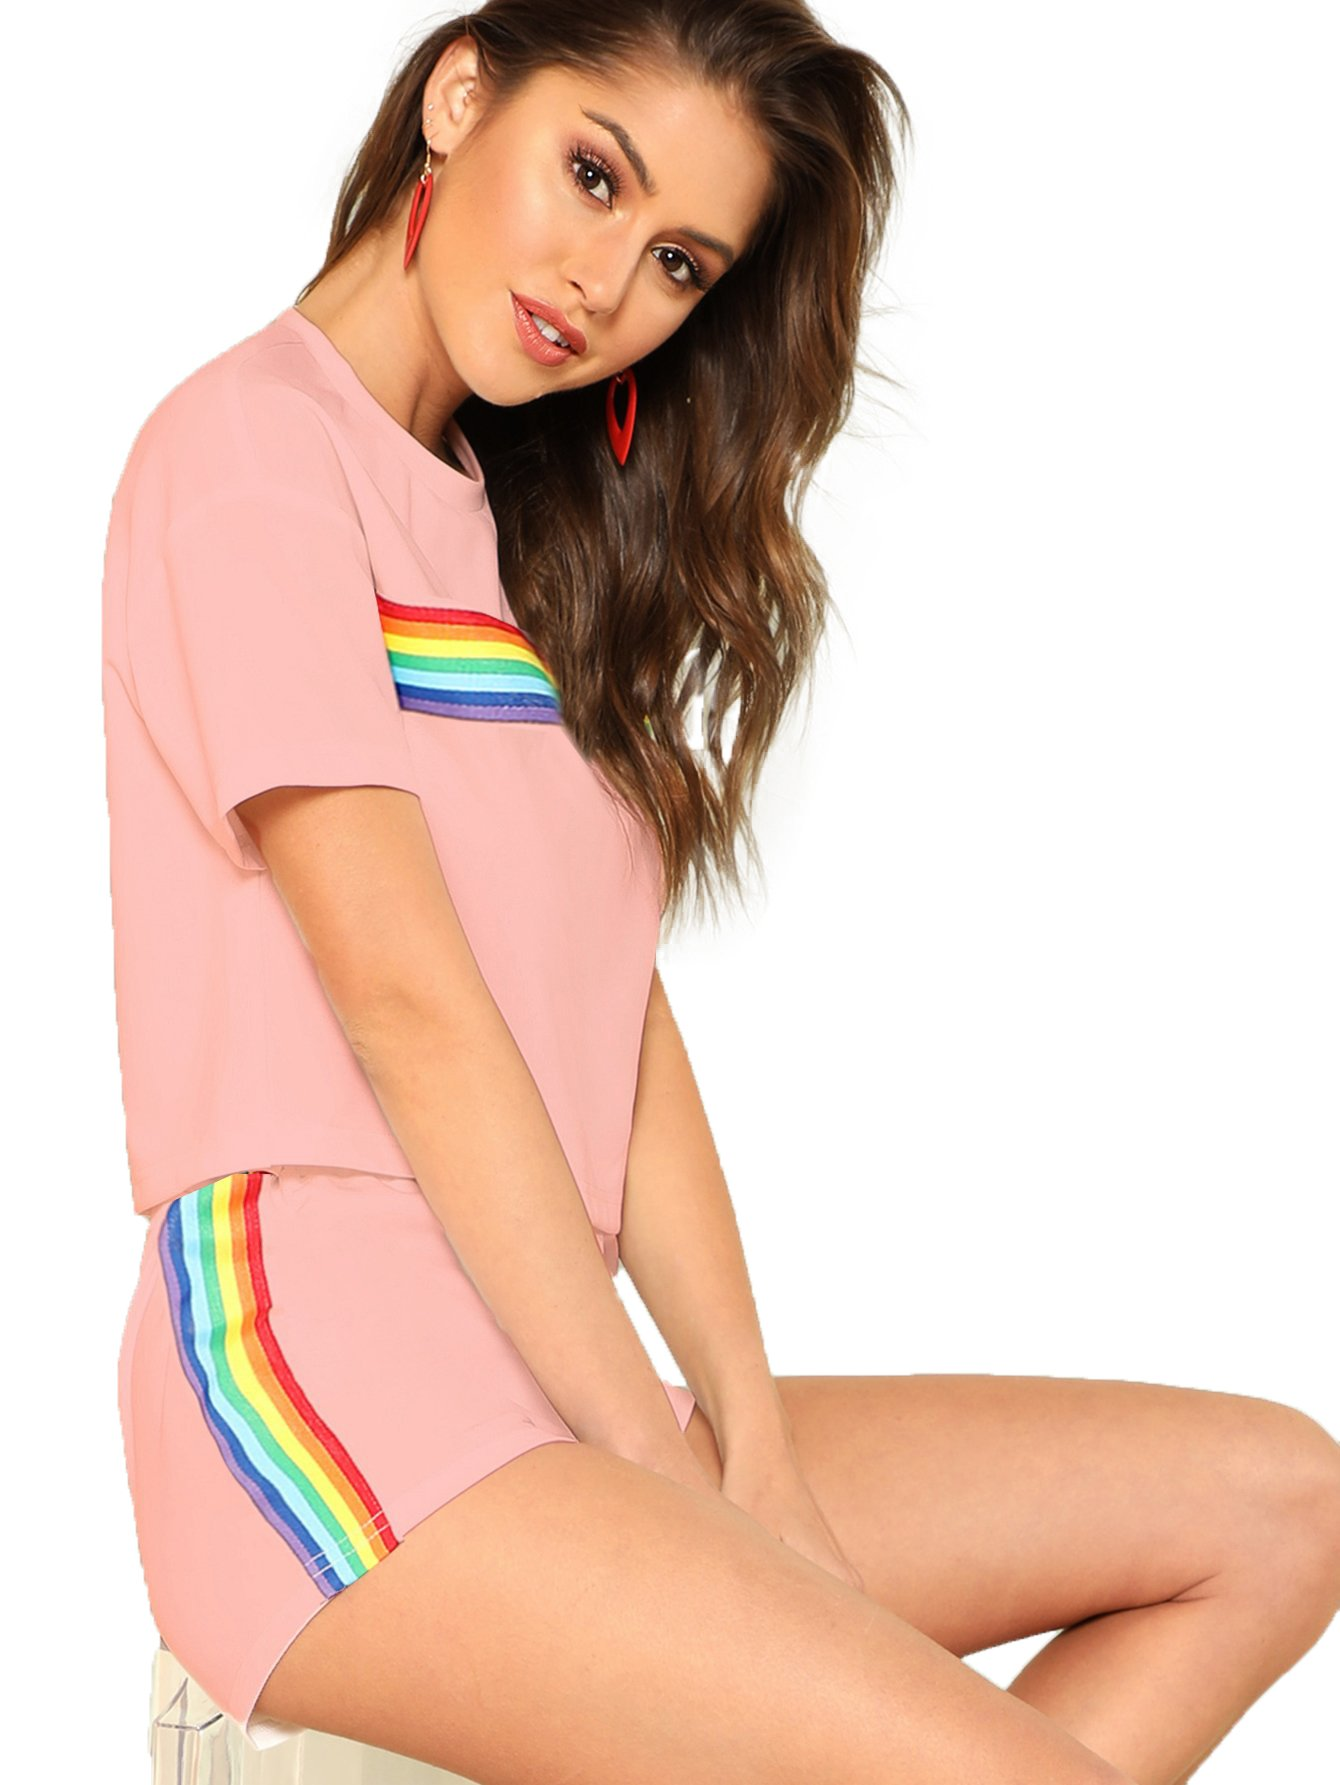 Romwe Women's 2 Piece Set Rainbow Print Casual Crop Cami Top with Shorts Pink M